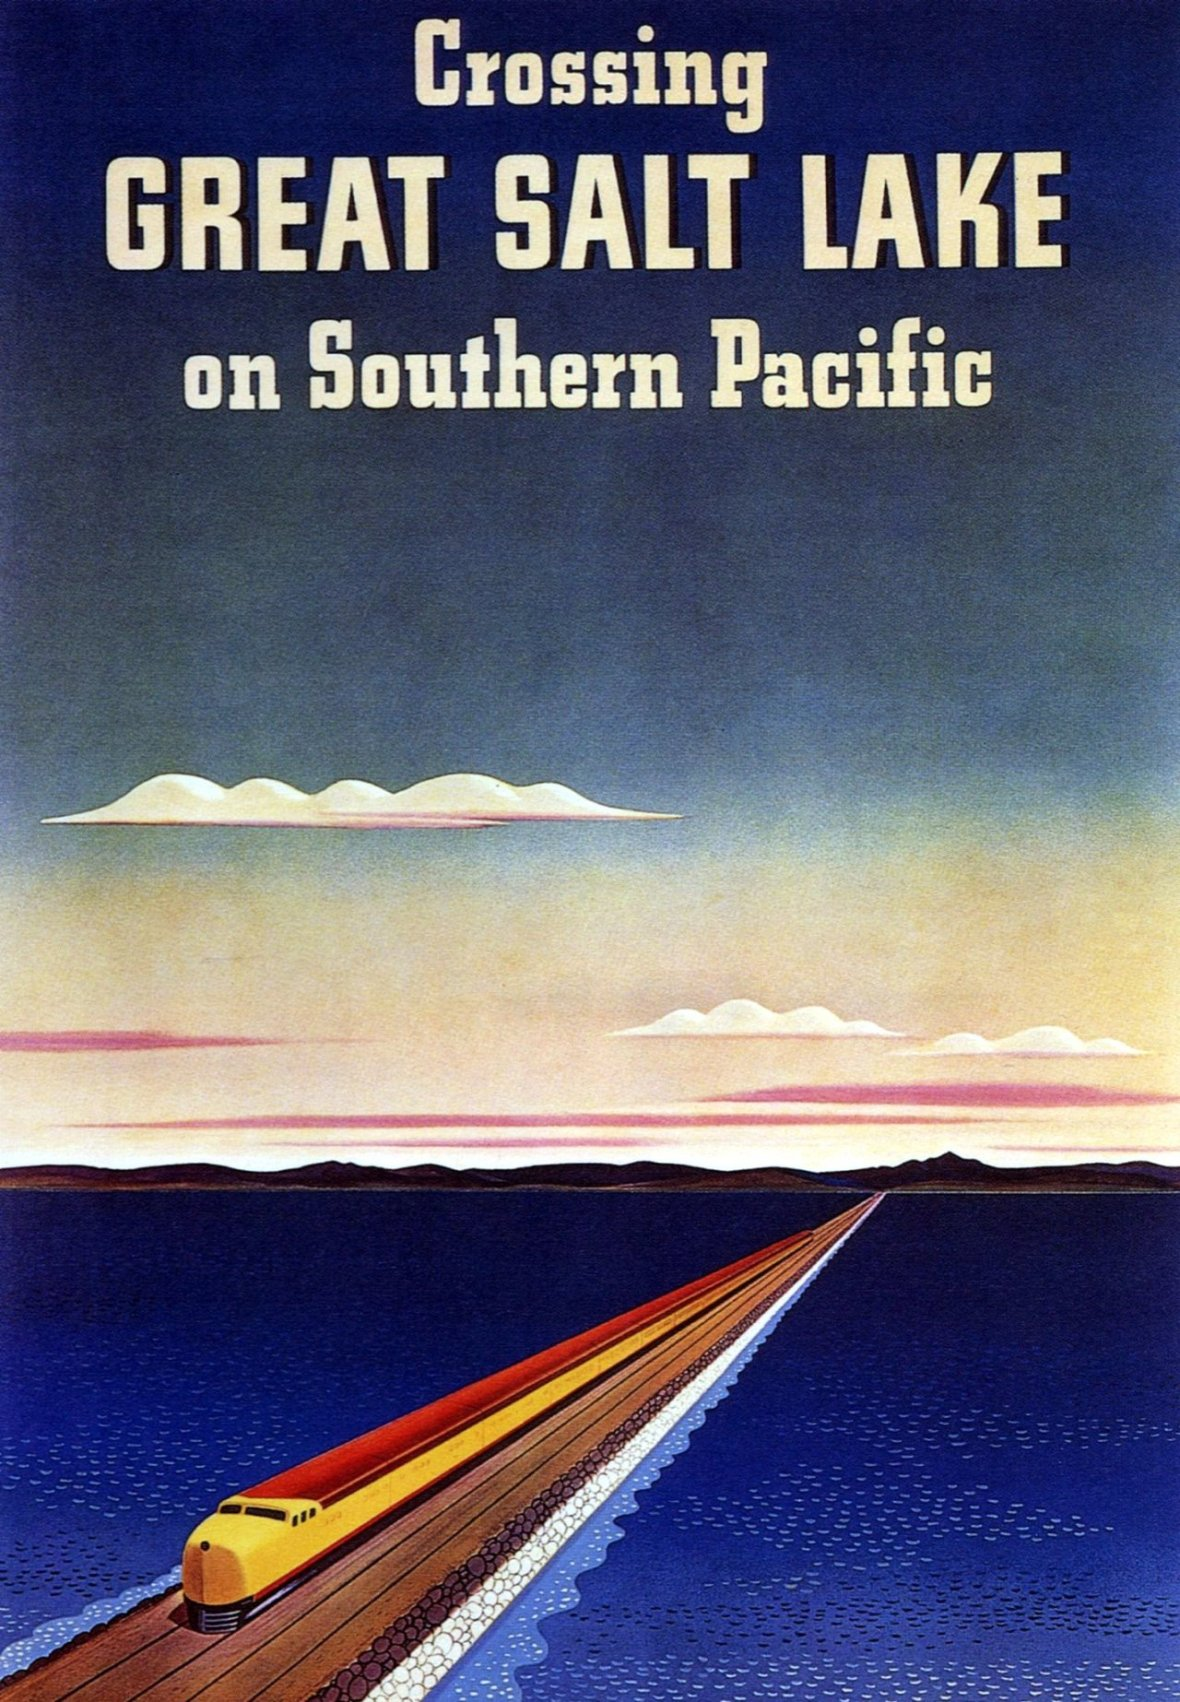 Southern Pacific Railroad - 1940